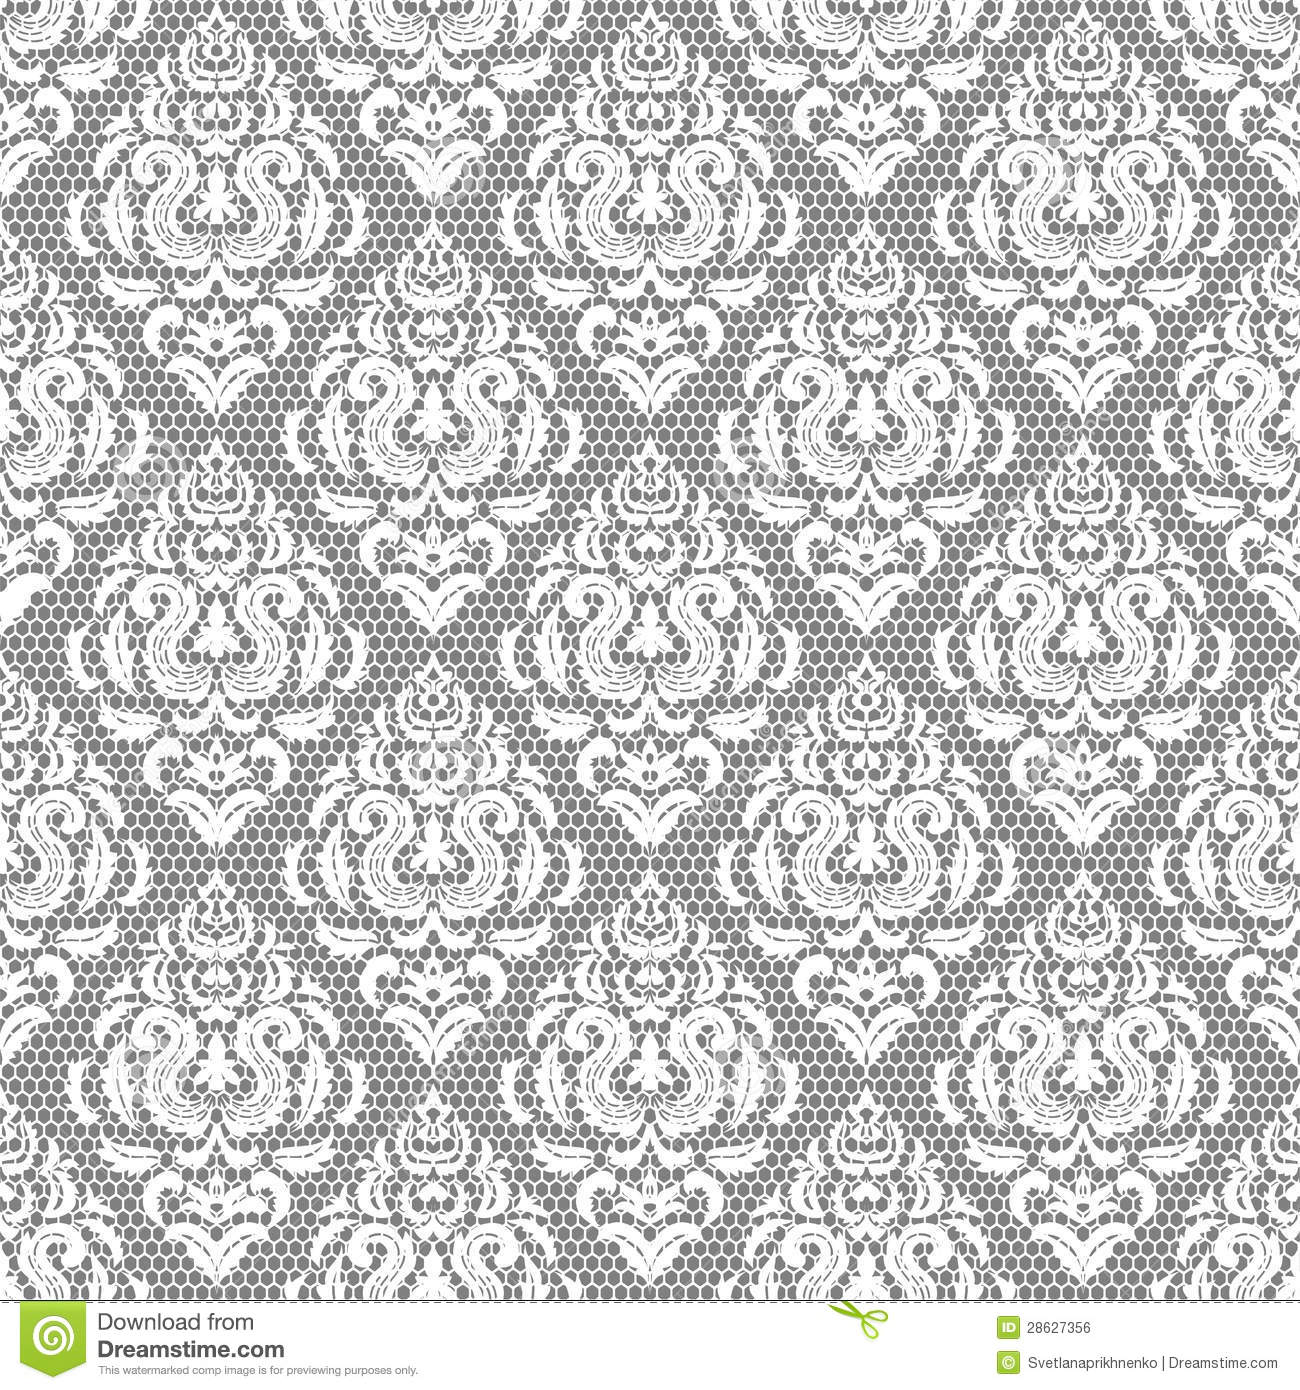 Seamless Lace Floral Pattern Royalty Free Stock Image